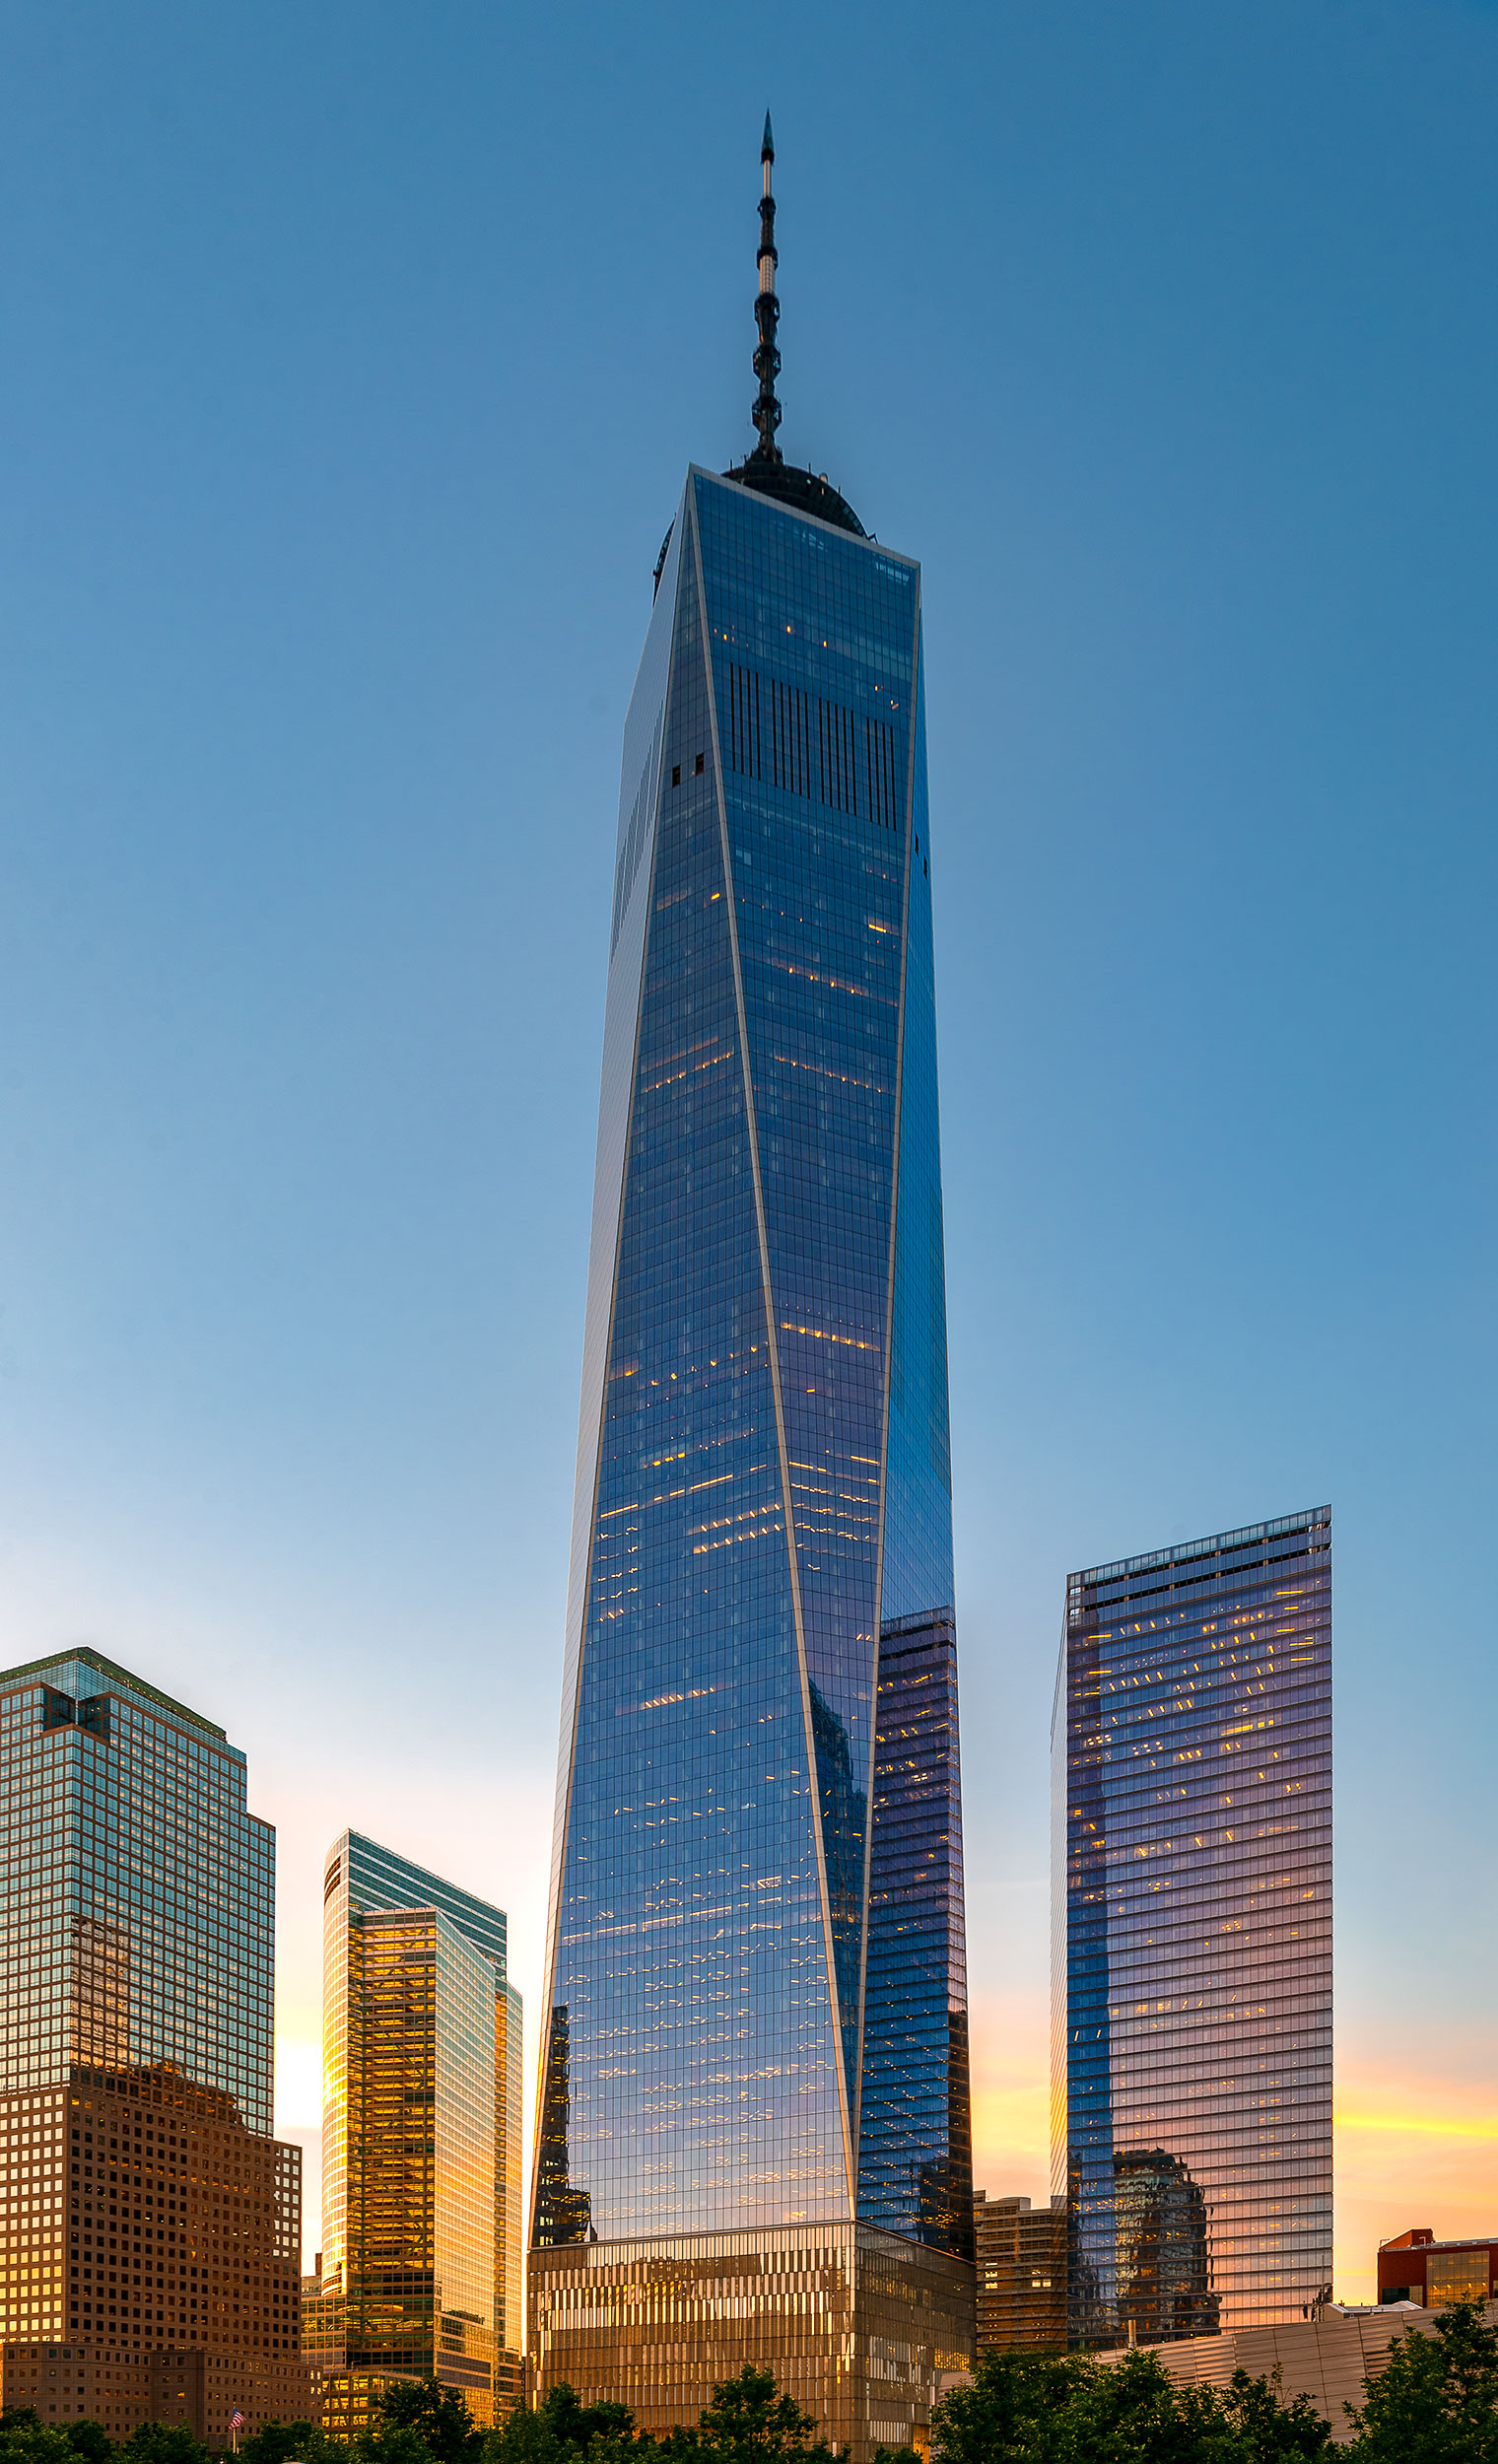 FREEDOM-TOWER-VB_JMH8354-copy.jpg